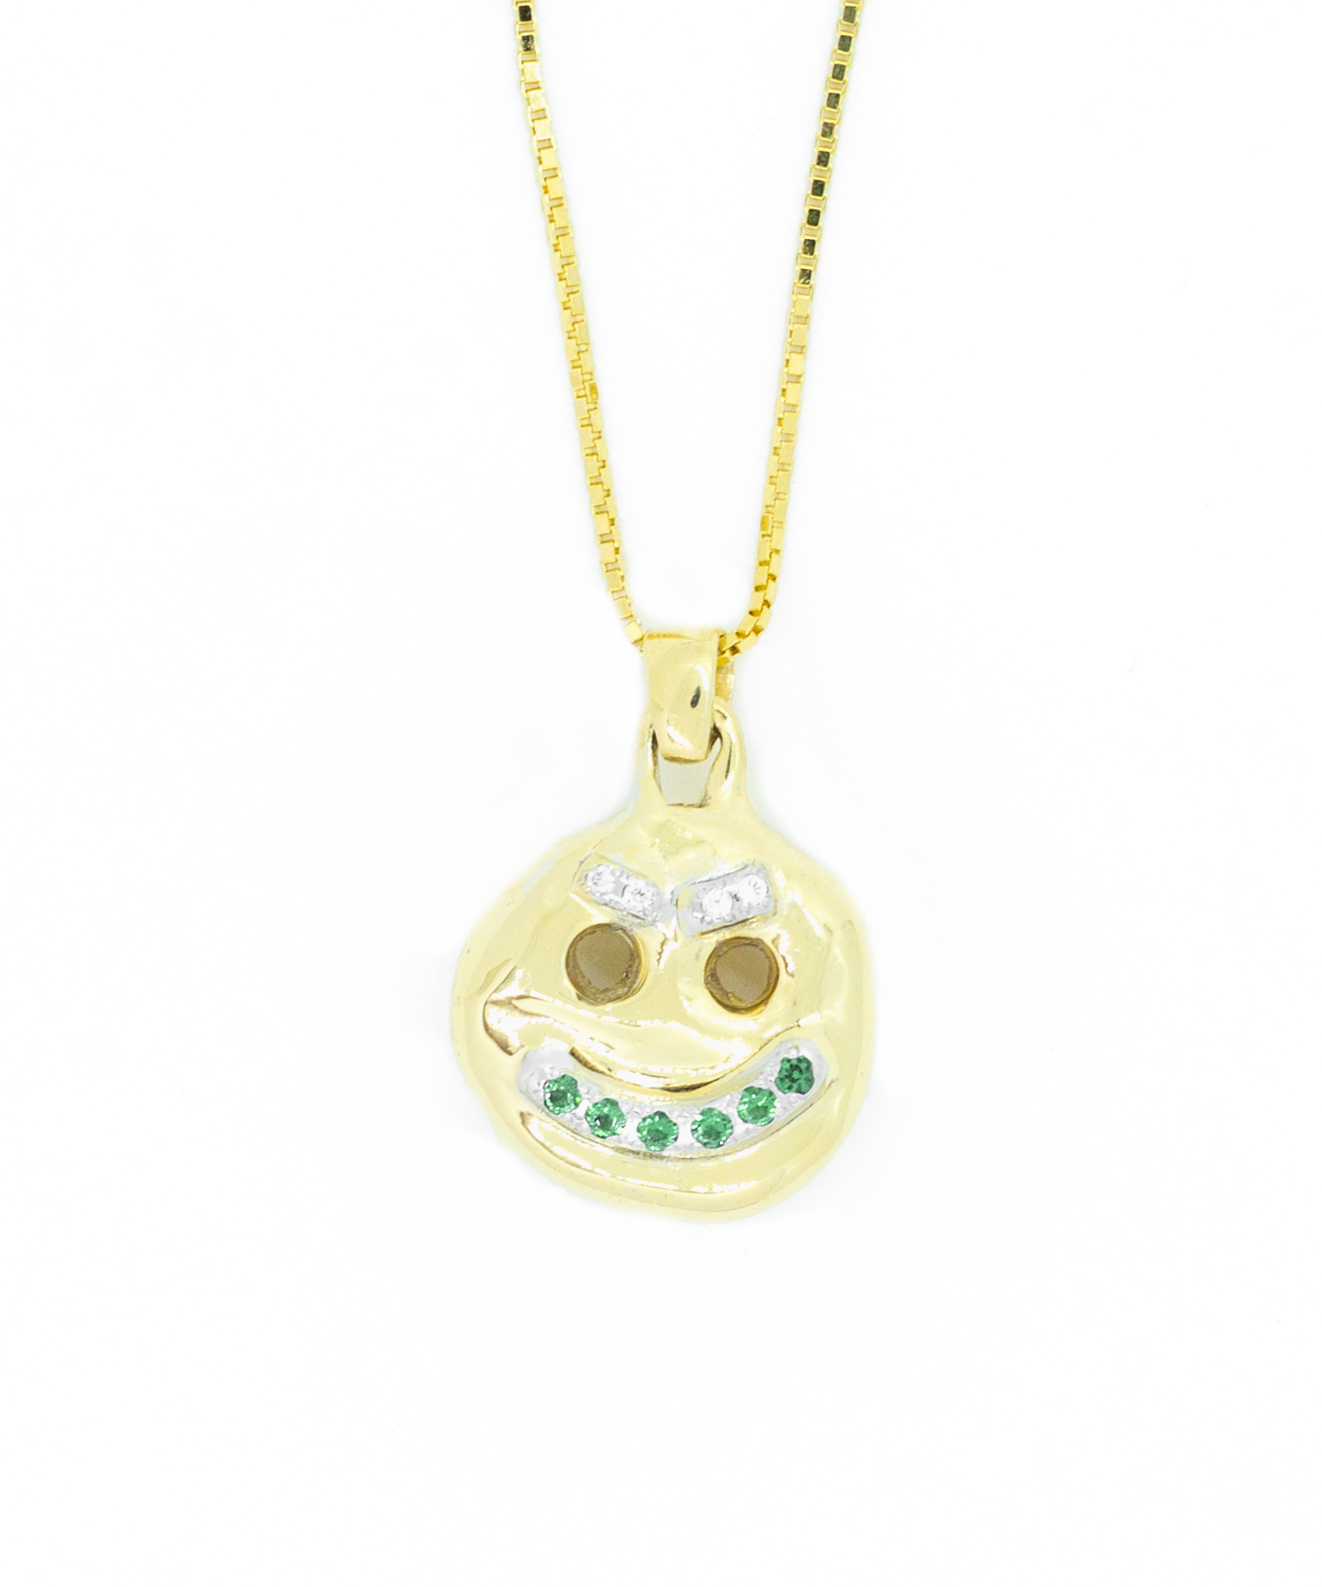 2-Faced Necklace